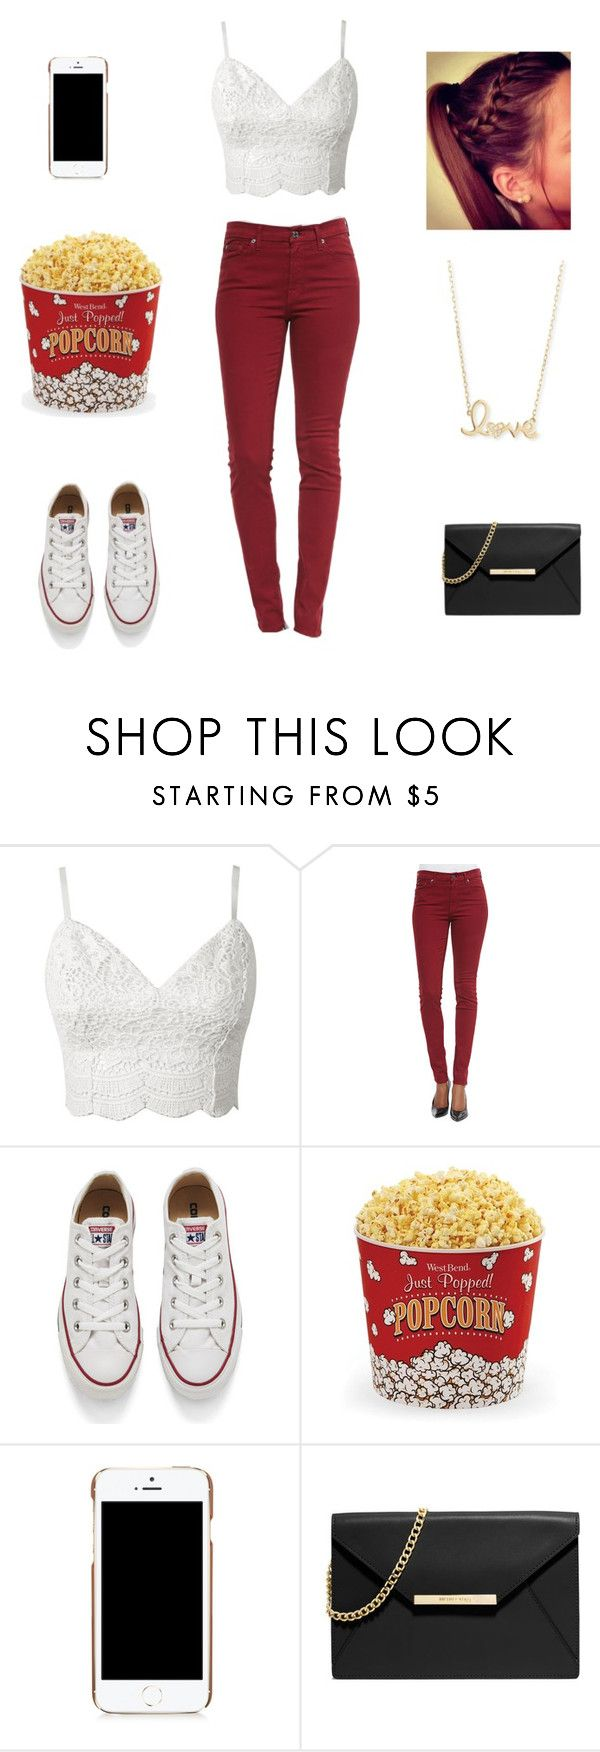 """Movie theatre outfit"" by joselyn-jimenez13 ❤ liked on Polyvore featuring 7 For All Mankind, Converse, West Bend, Moschino, MICHAEL Michael Kors and Sydney Evan"